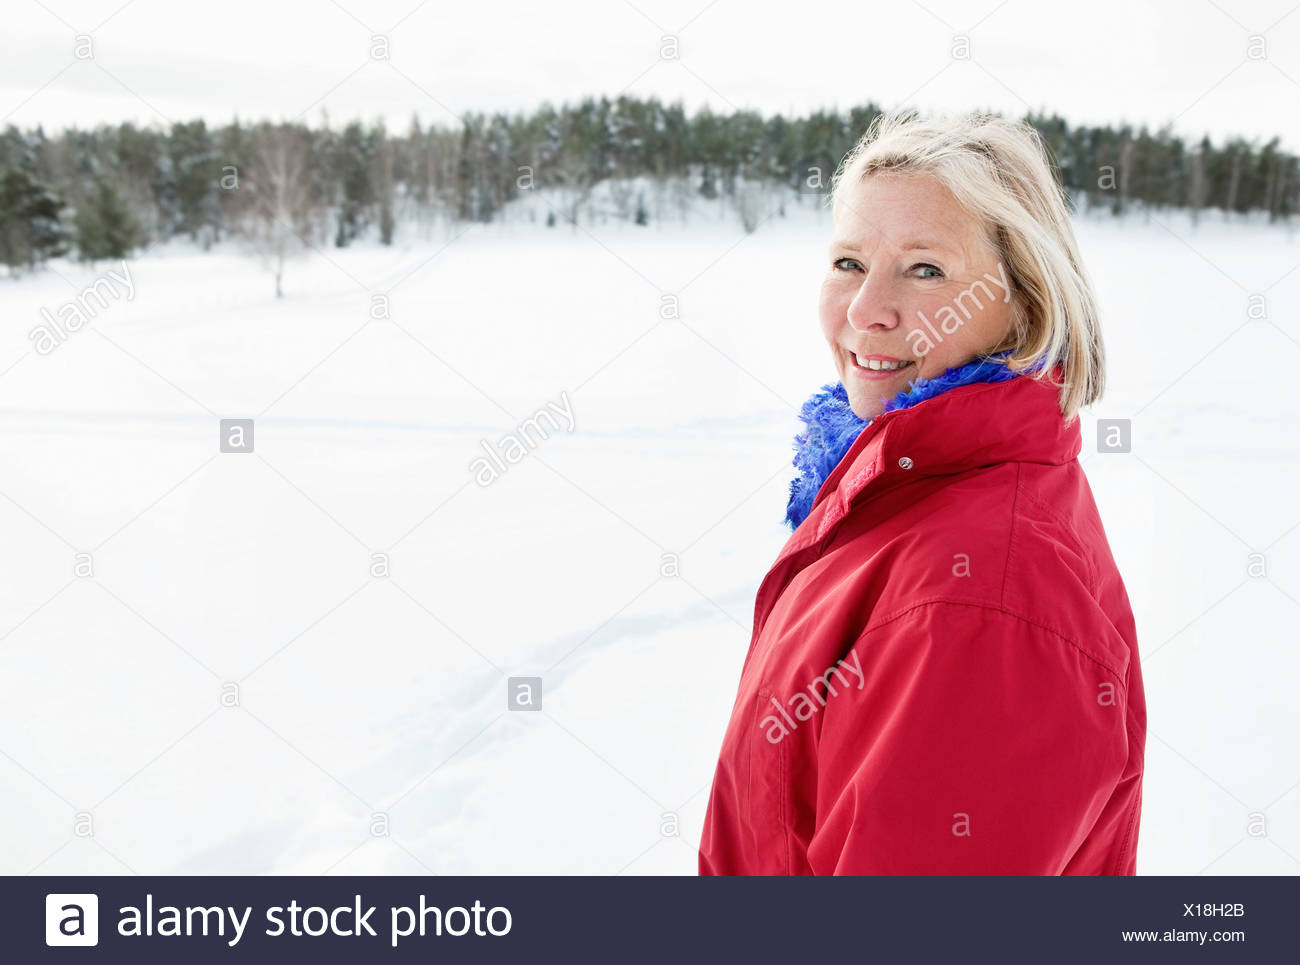 Closeup on lonely woman outdoors - Stock Image